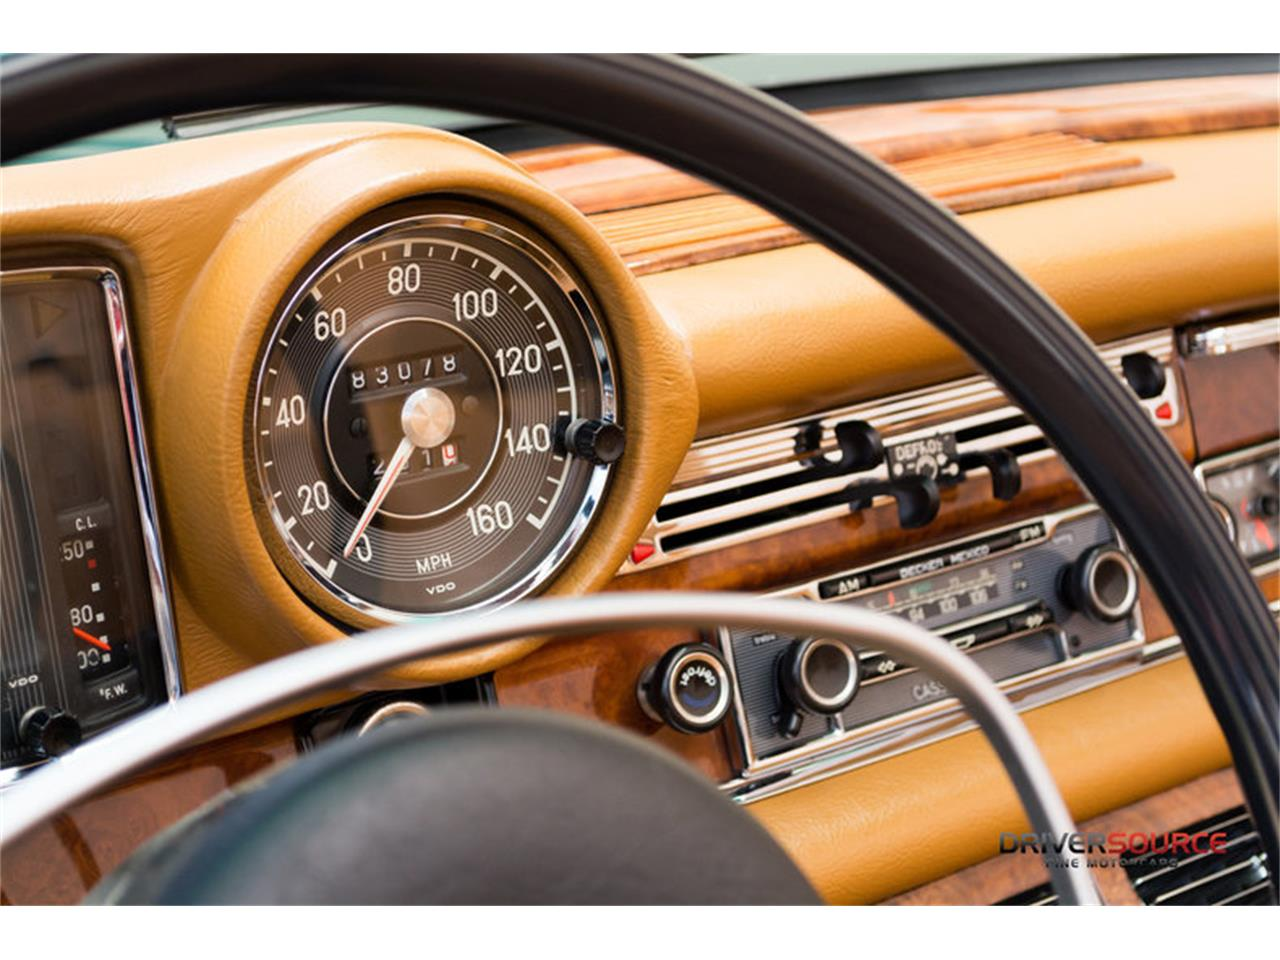 Large Picture of Classic '71 Mercedes-Benz 280SE located in Texas Offered by Driversource - LAC0